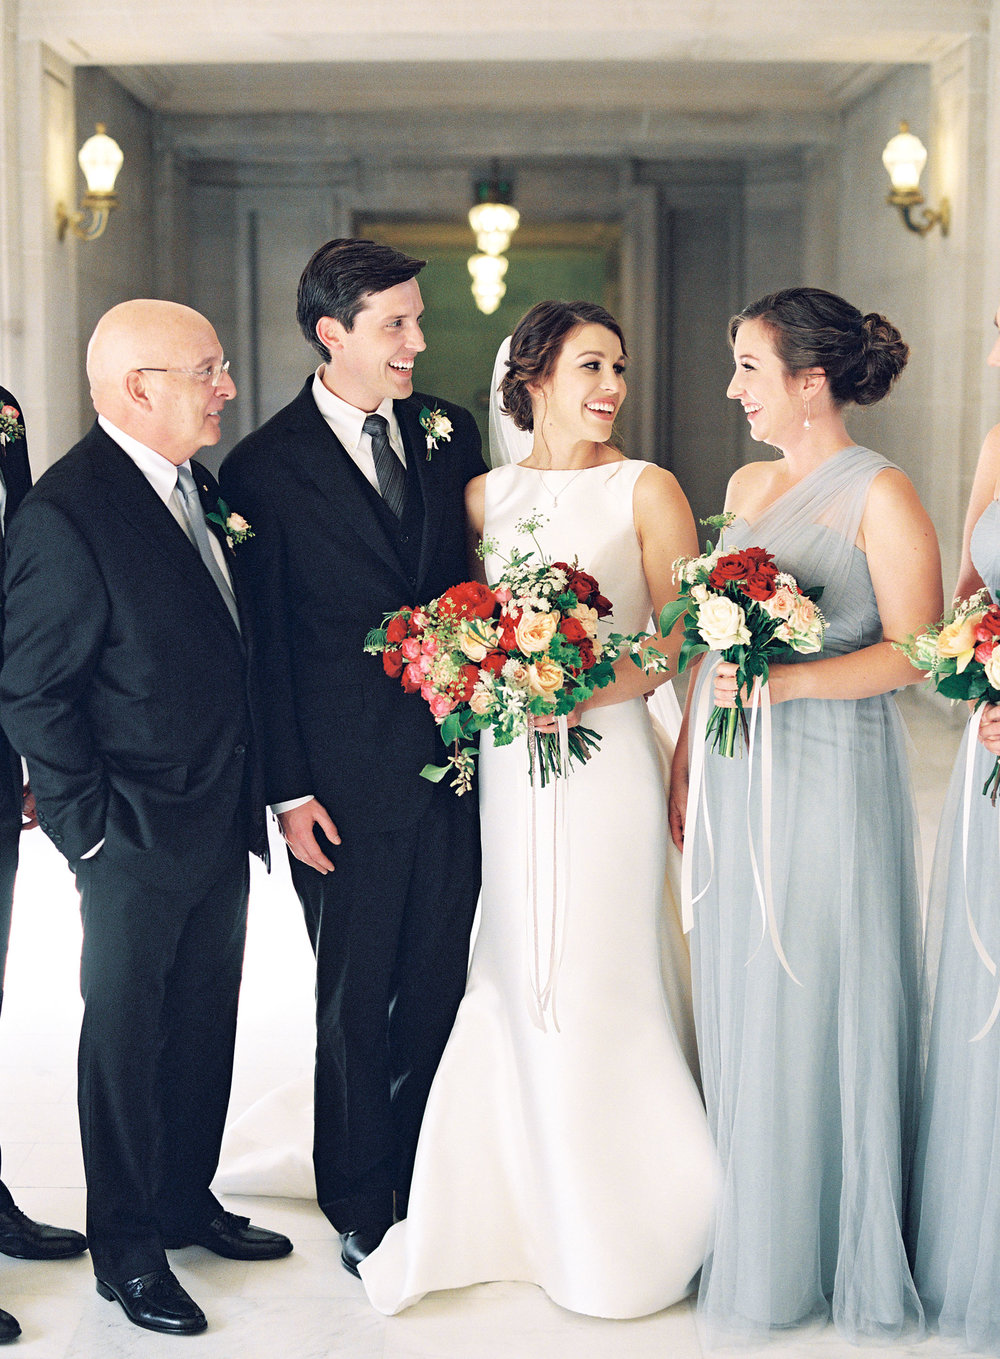 Meghan Mehan Photography - California Wedding Photographer | San Francisco City Hall Wedding 070.jpg